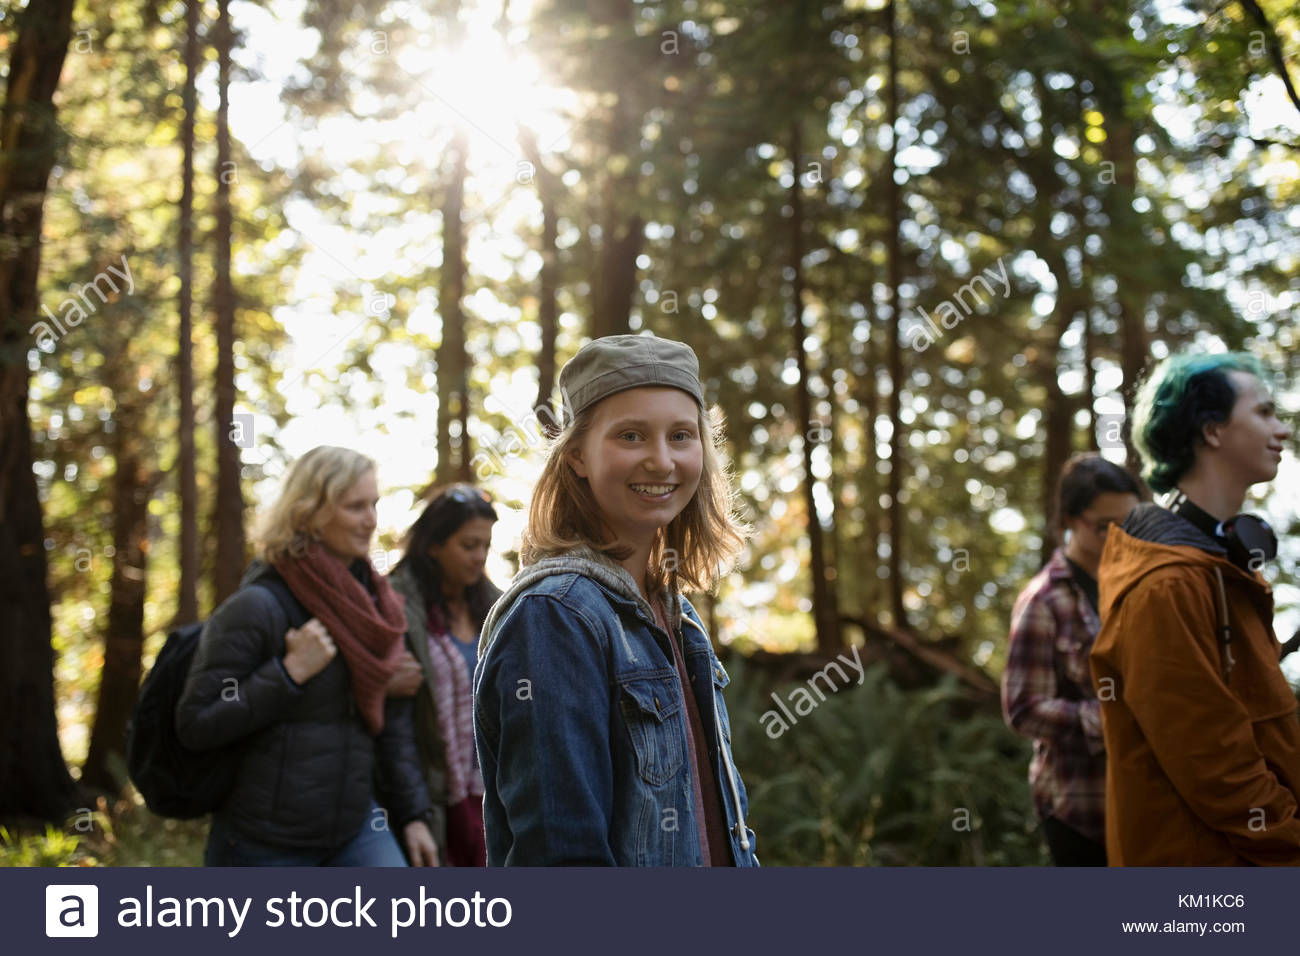 Portrait smiling girl hiking in woods with family - Stock Image